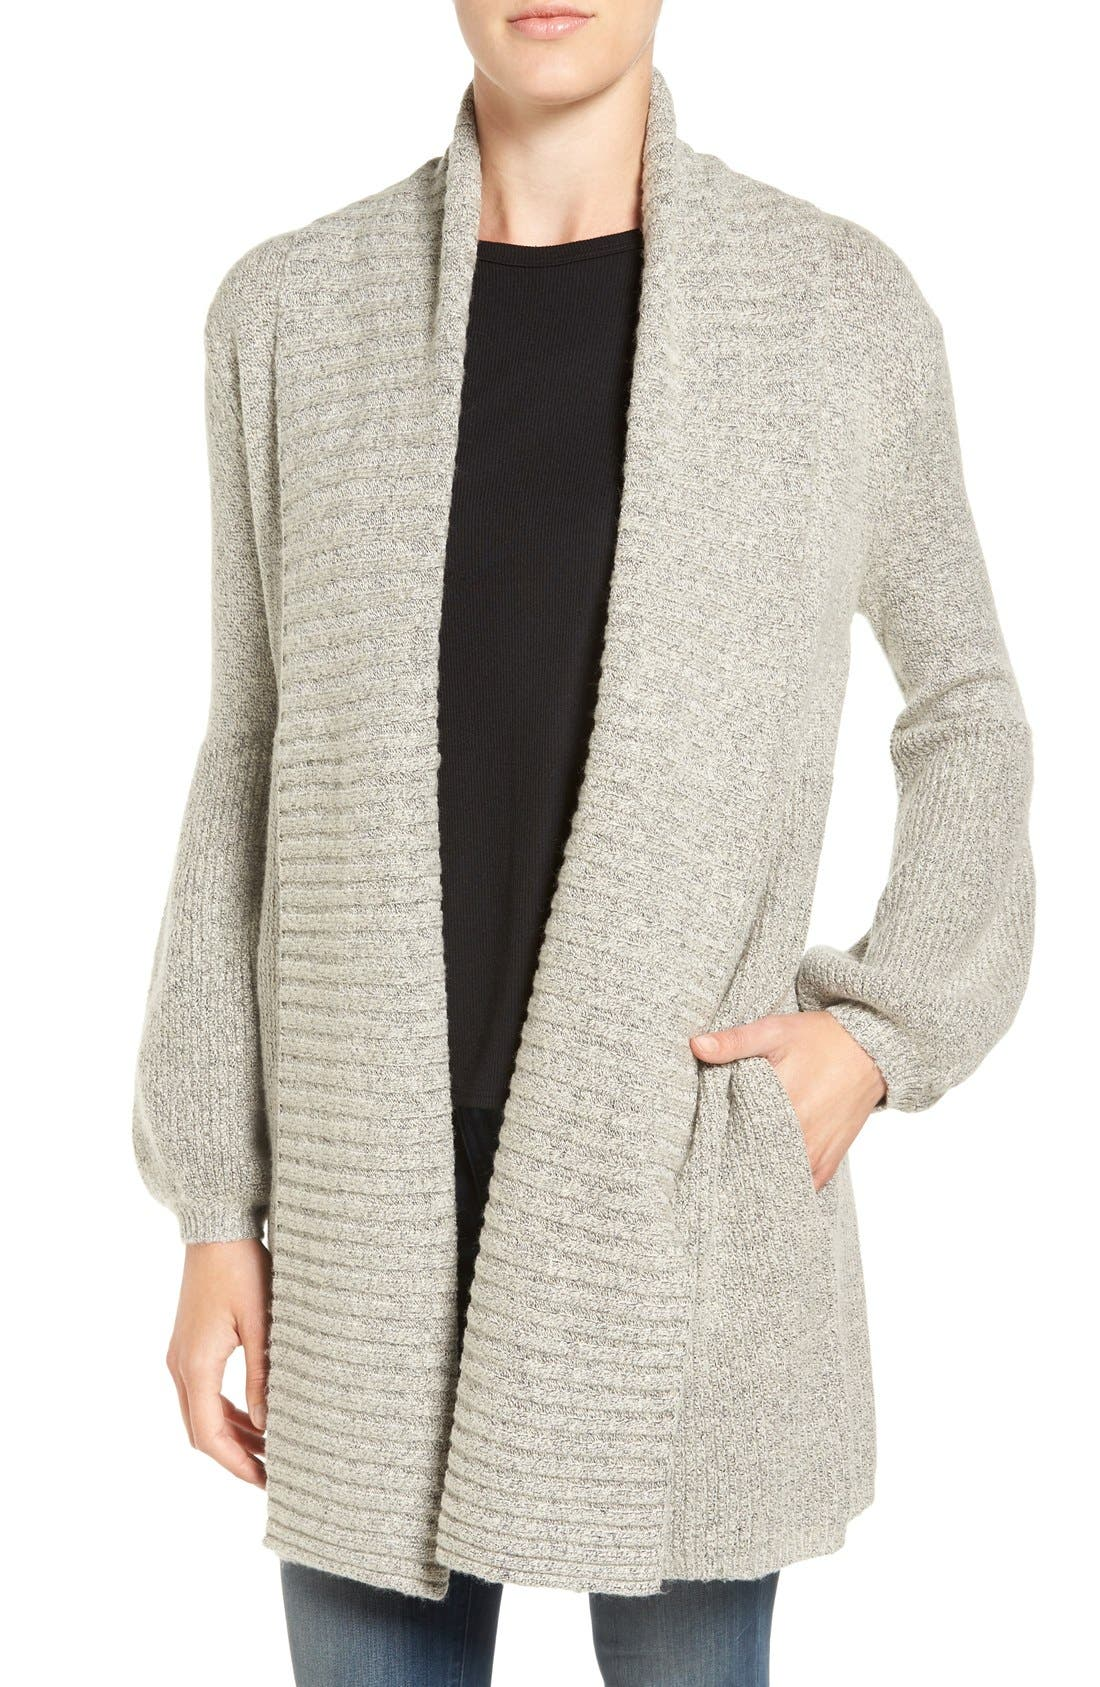 Hinge Ribbed Cardigan